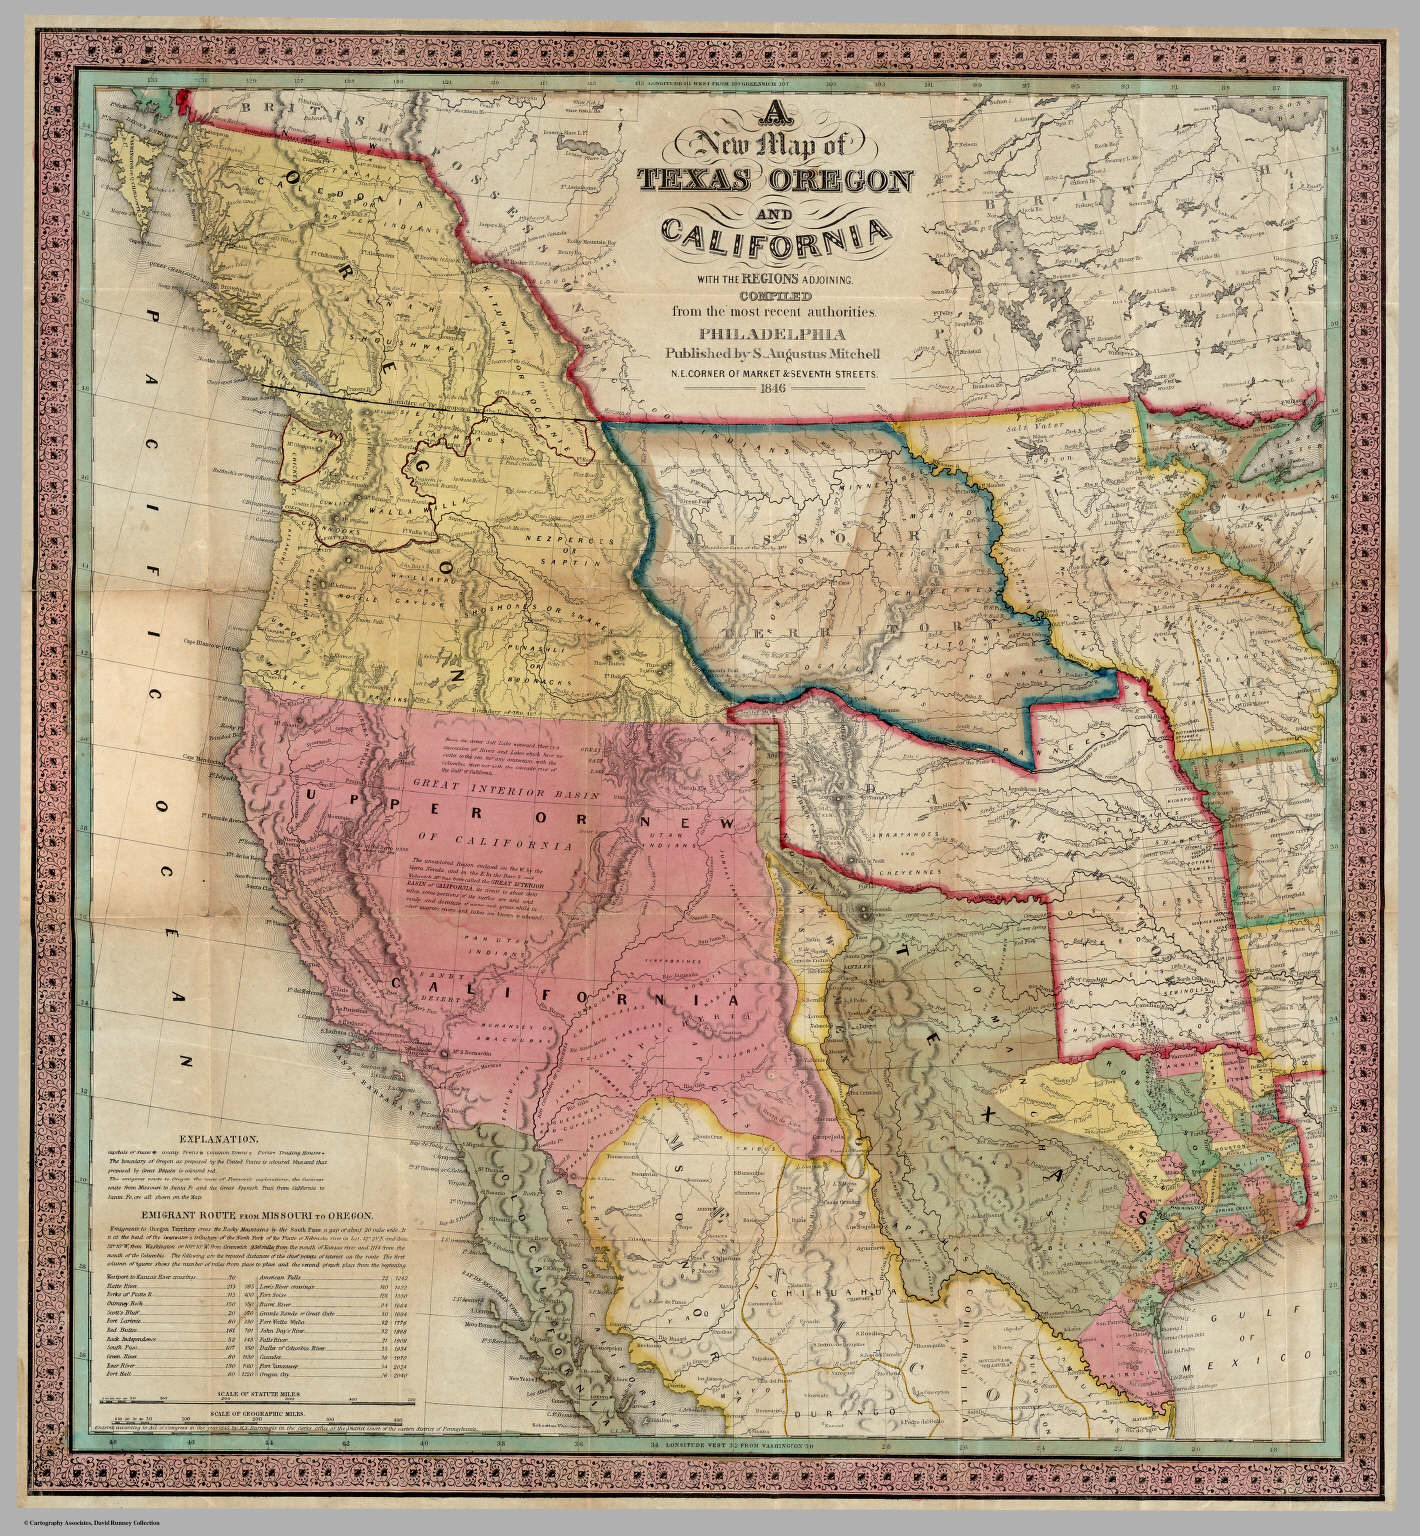 Map Of California To Oregon.A New Map Of Texas Oregon And California With The Regions Adjoining